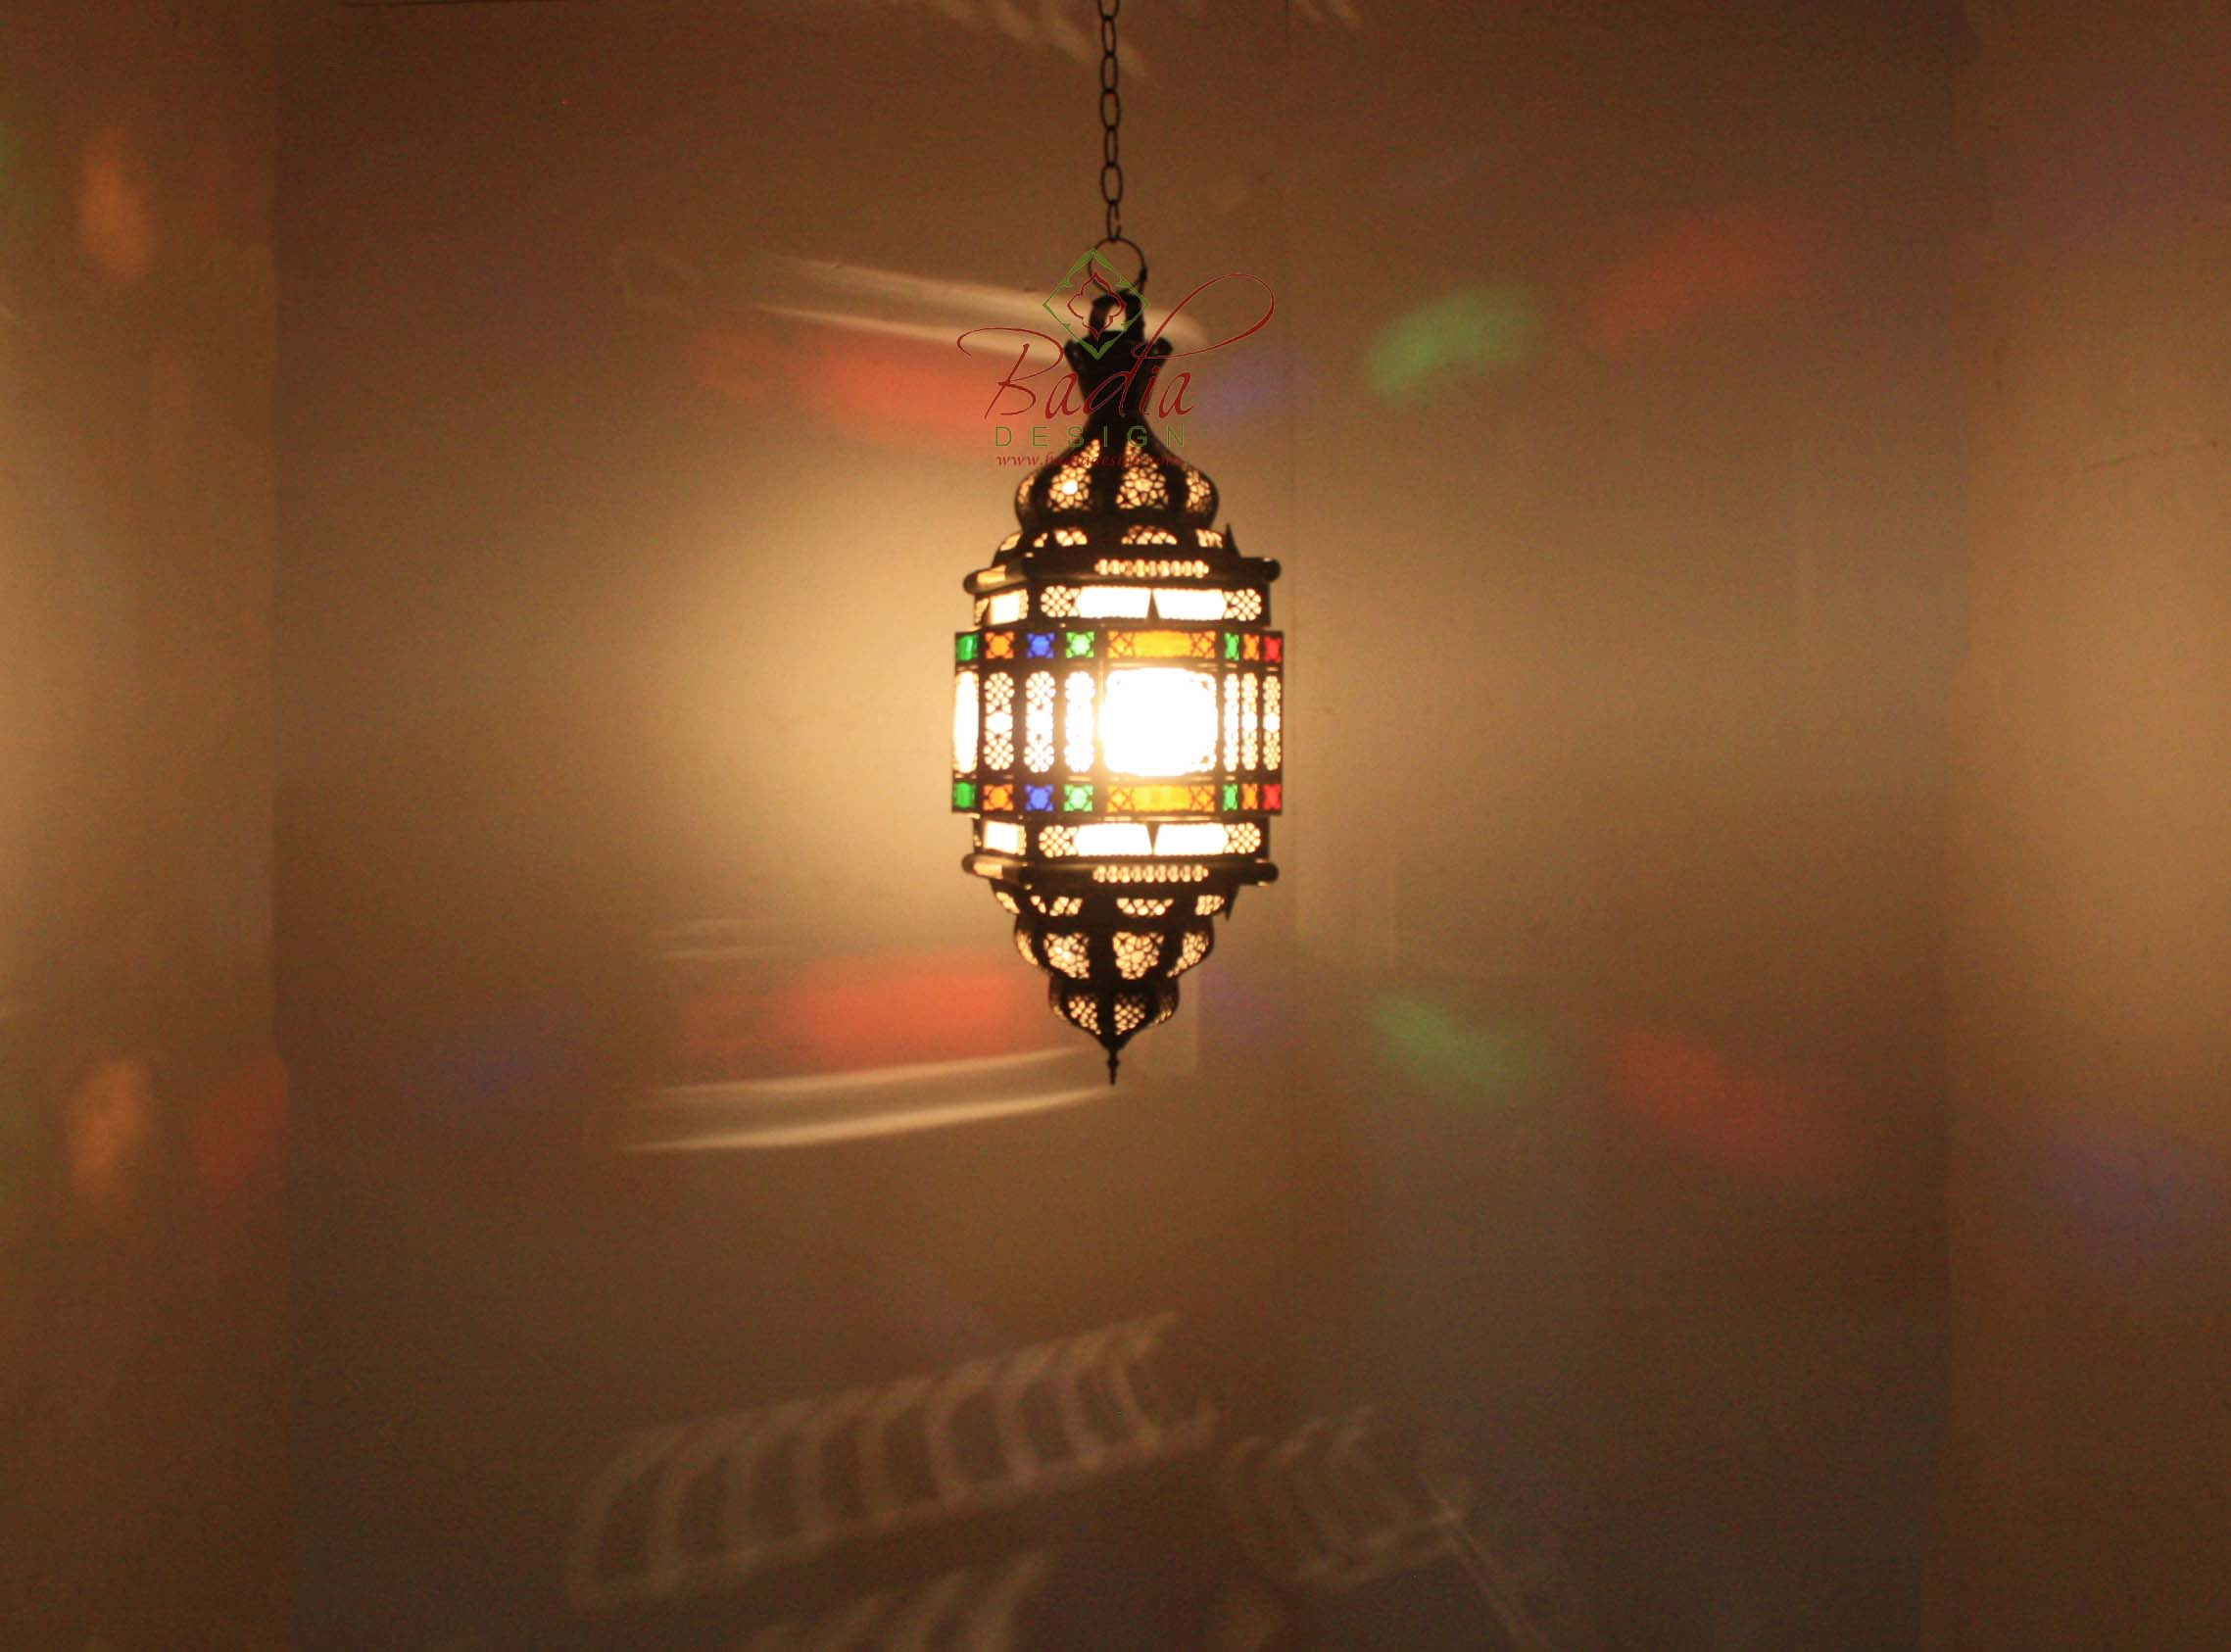 moroccan-hanging-brass-lantern-with-multi-color-glass-lig344-2.jpg